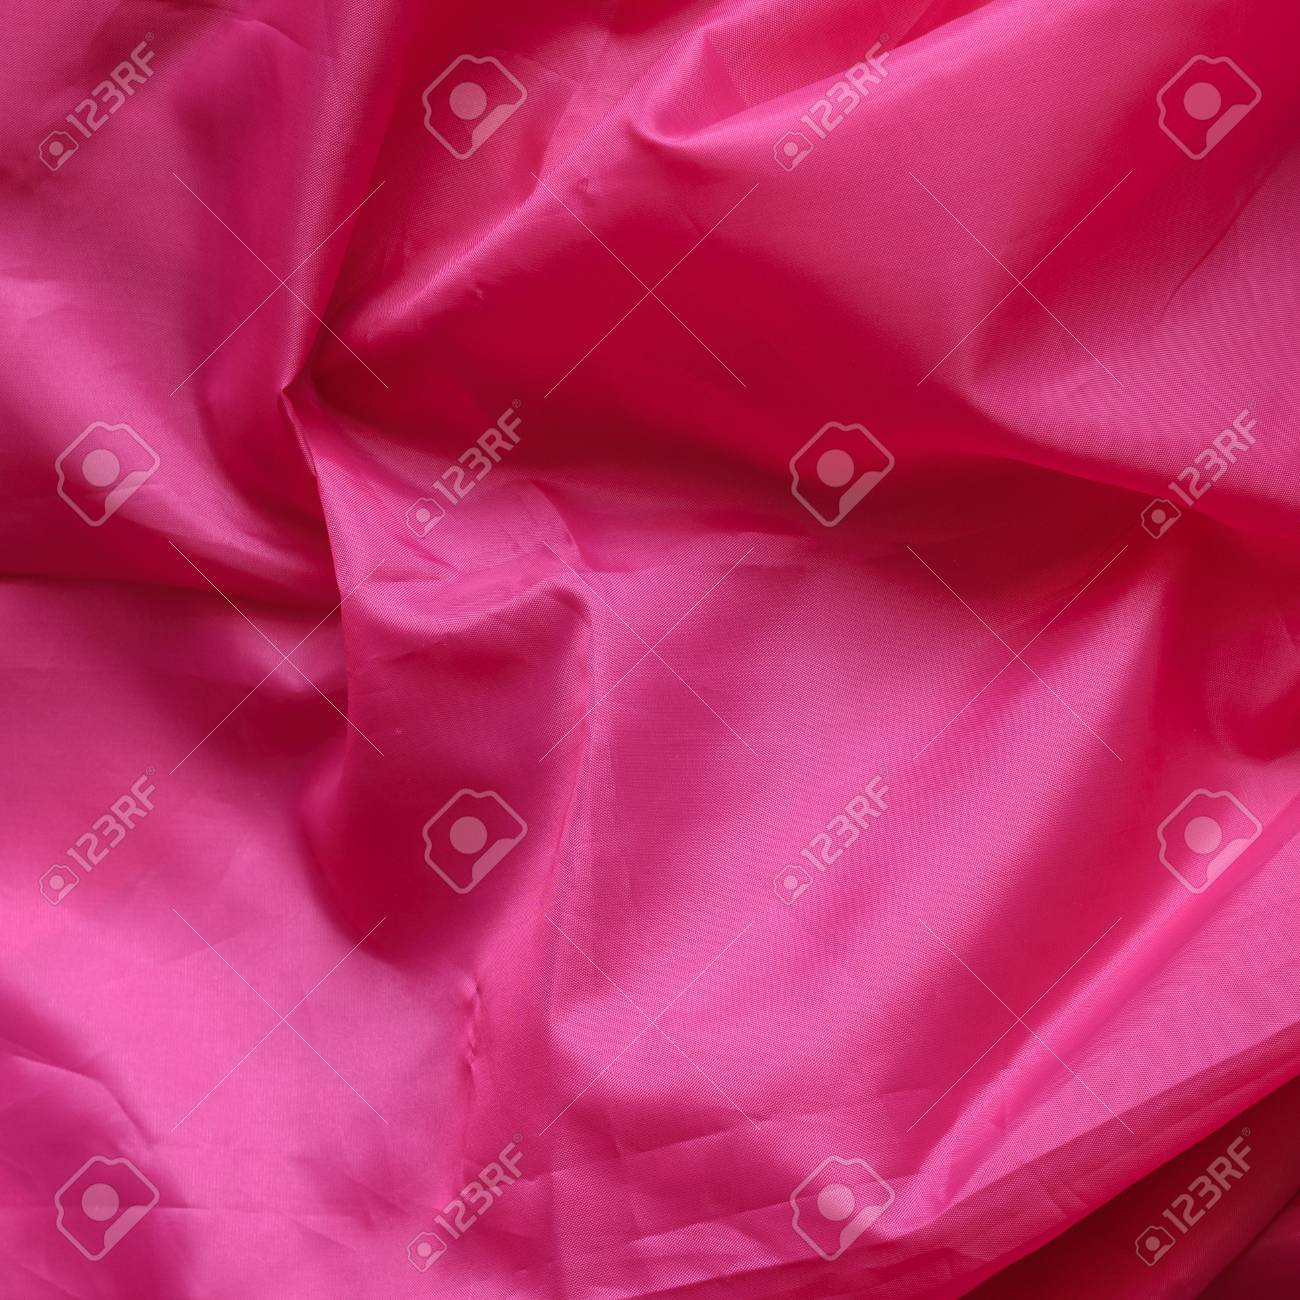 Pink Synthetic Lining Fabric with Folds  Crumpled Sheet or Clothes